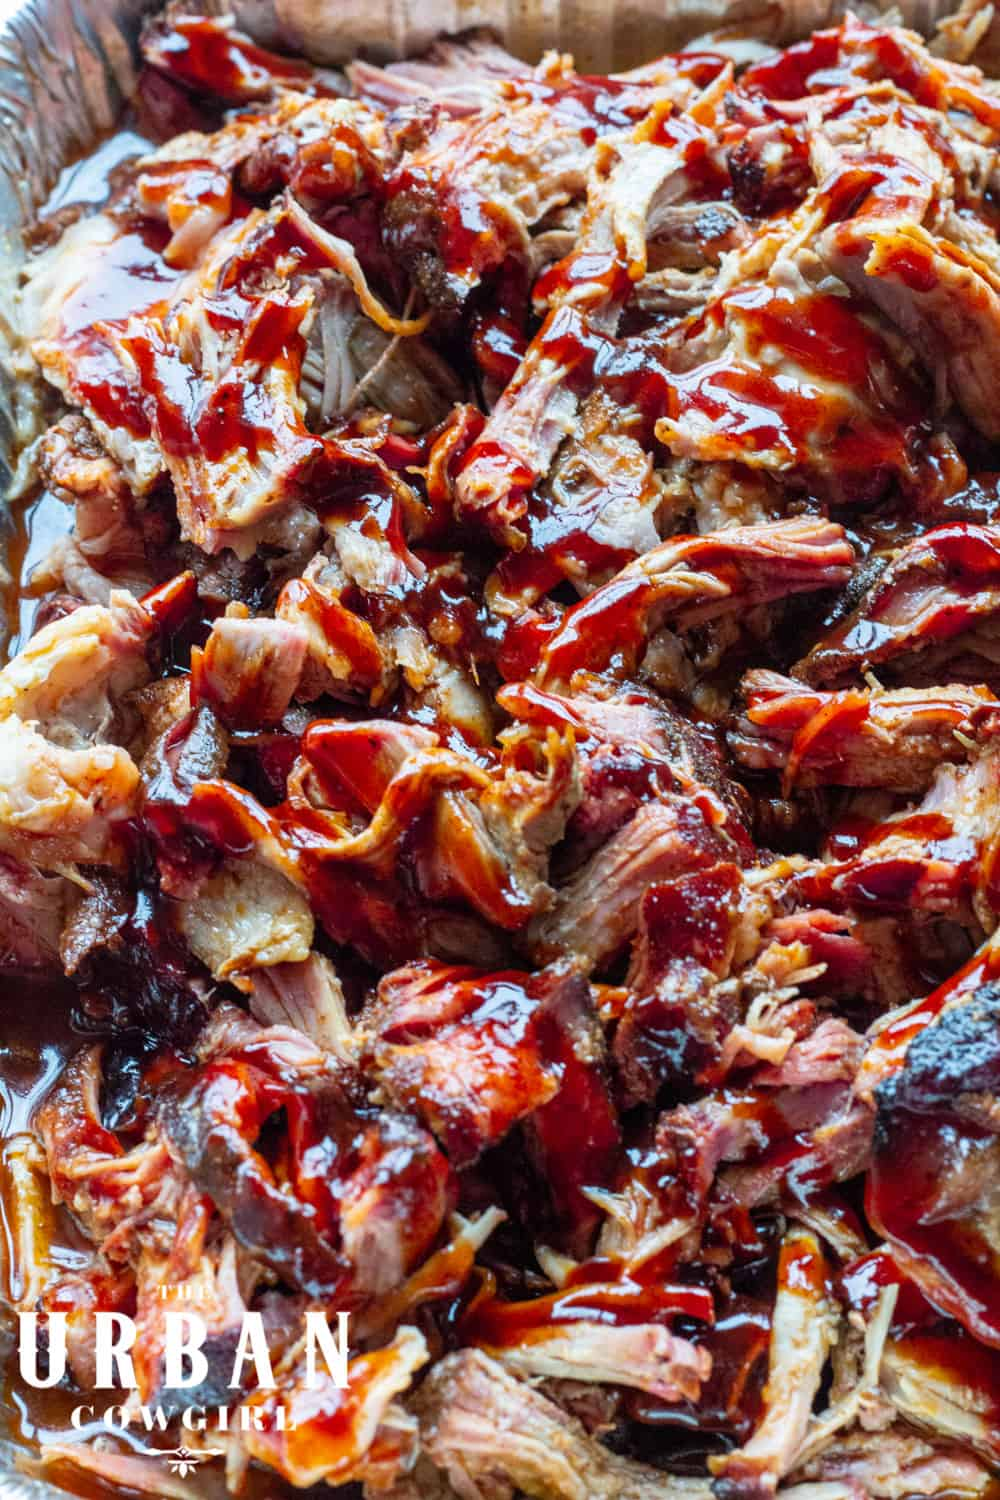 A close up tray of juicy pulled pork with shiny barbecue sauce made on the pellet grill.